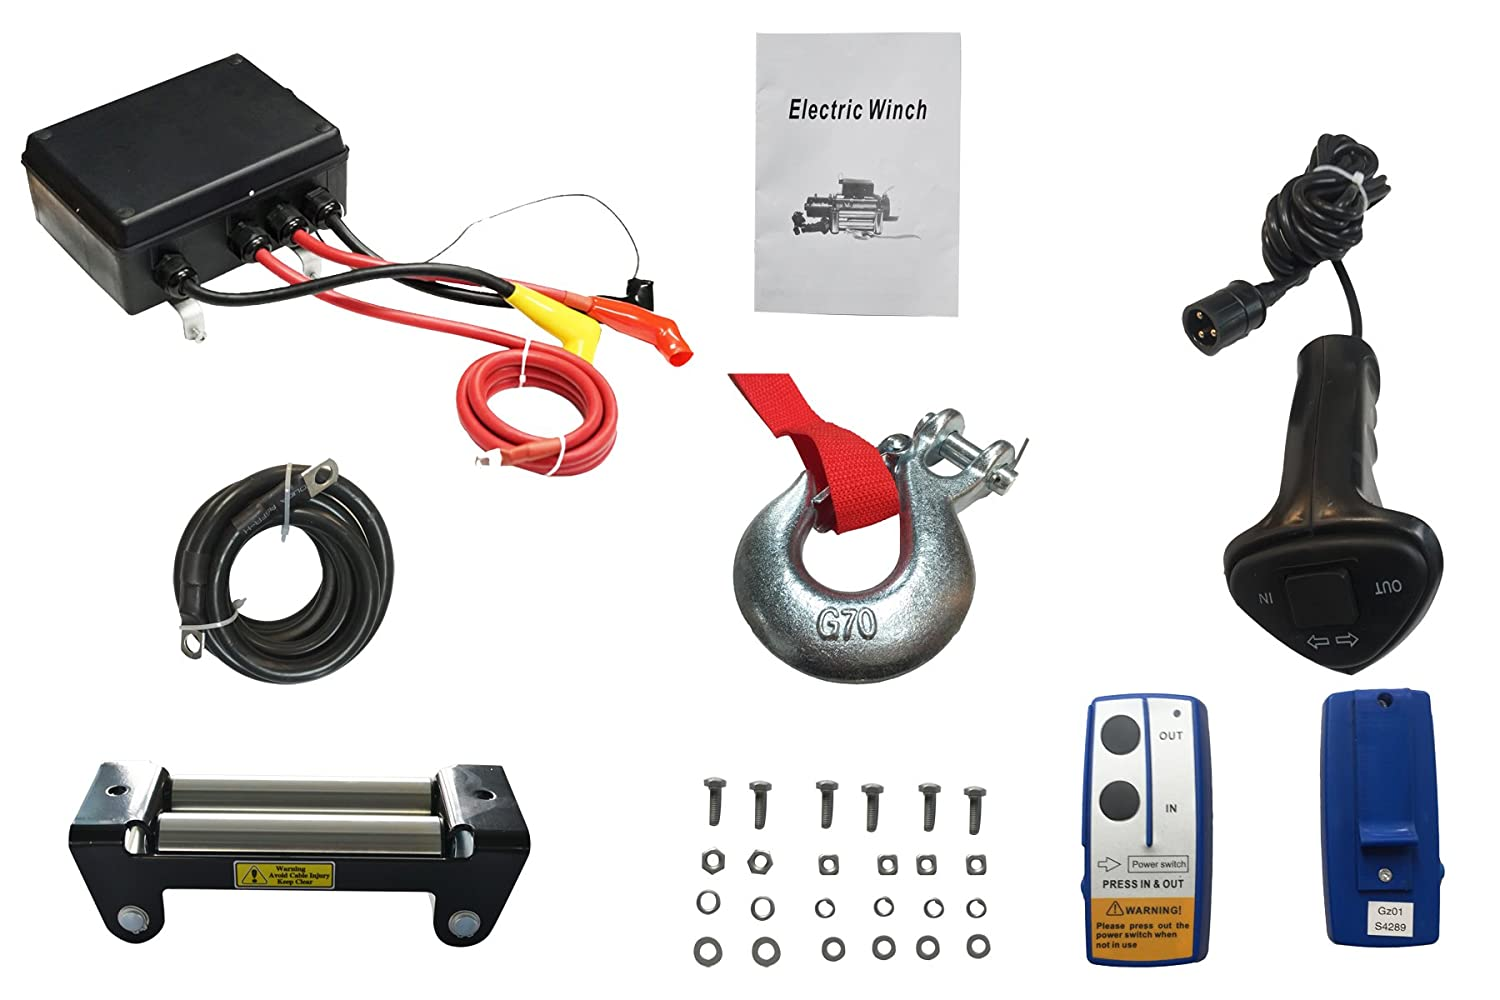 X Bull 12v Steel Cable Electric Winch 12000 Lb Load 12 Volt Remote Control Wiring Diagram Capacity Automotive